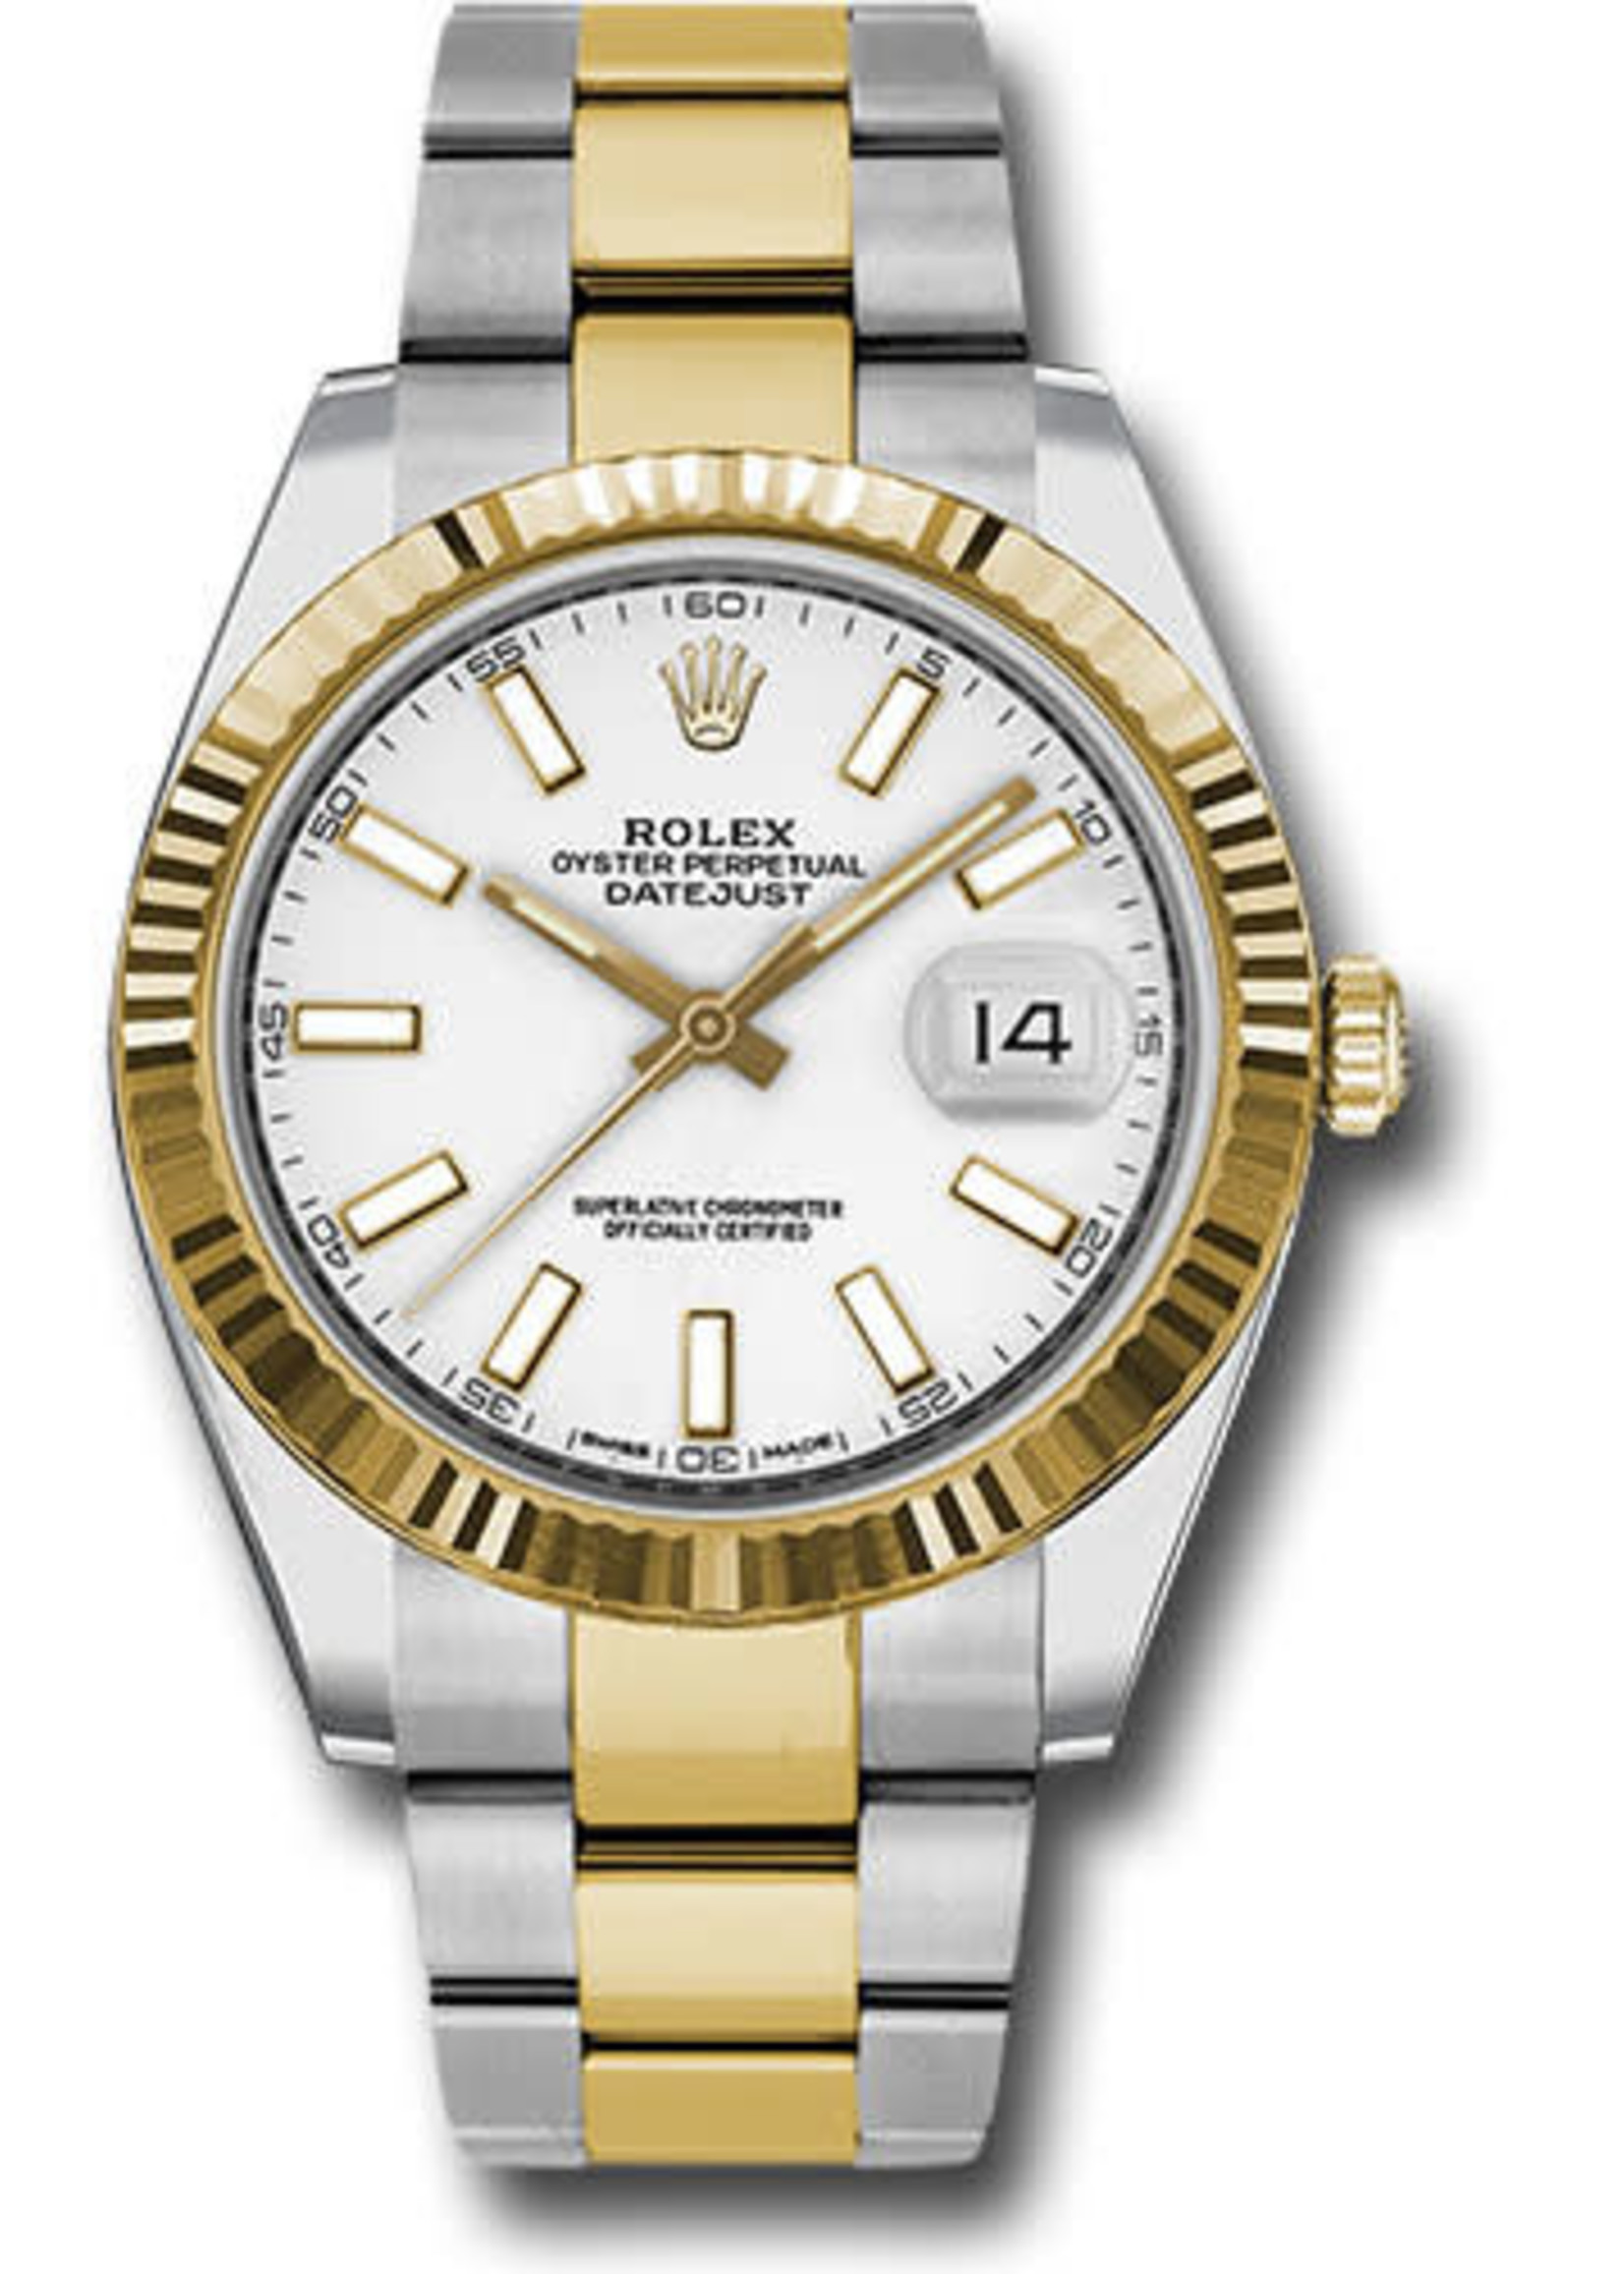 Rolex ROLEX DATEJUST II 41MM STEEL AND YELLOW GOLD#126333